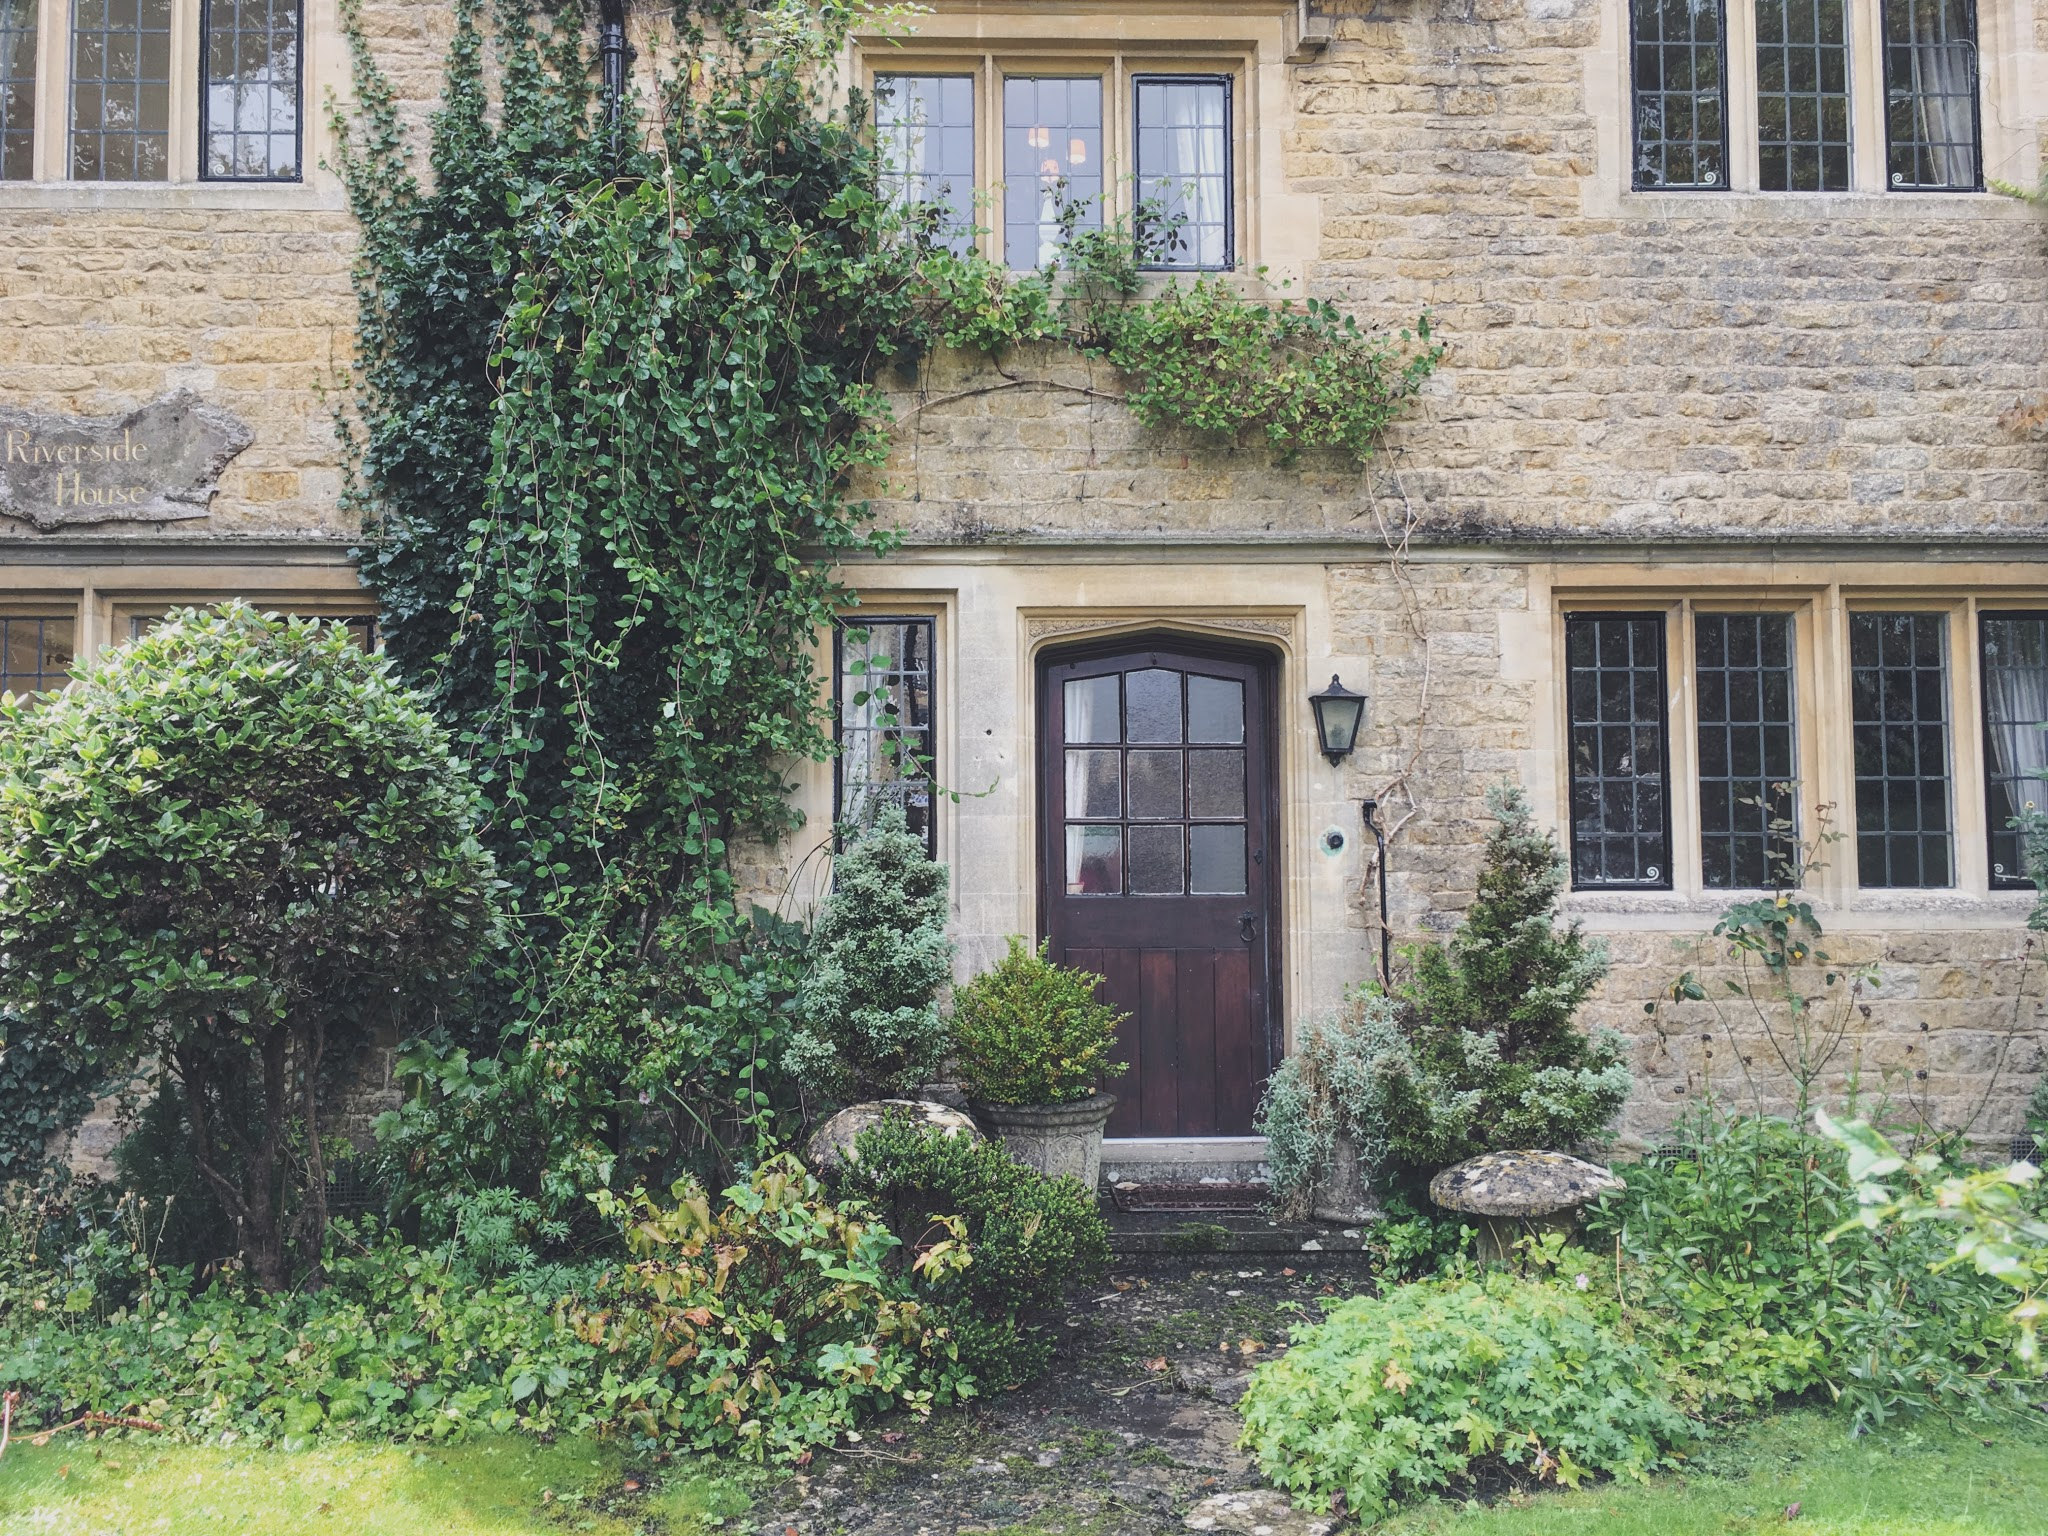 Cute cottage in Bourton-on-the-Water, Cotswolds, England